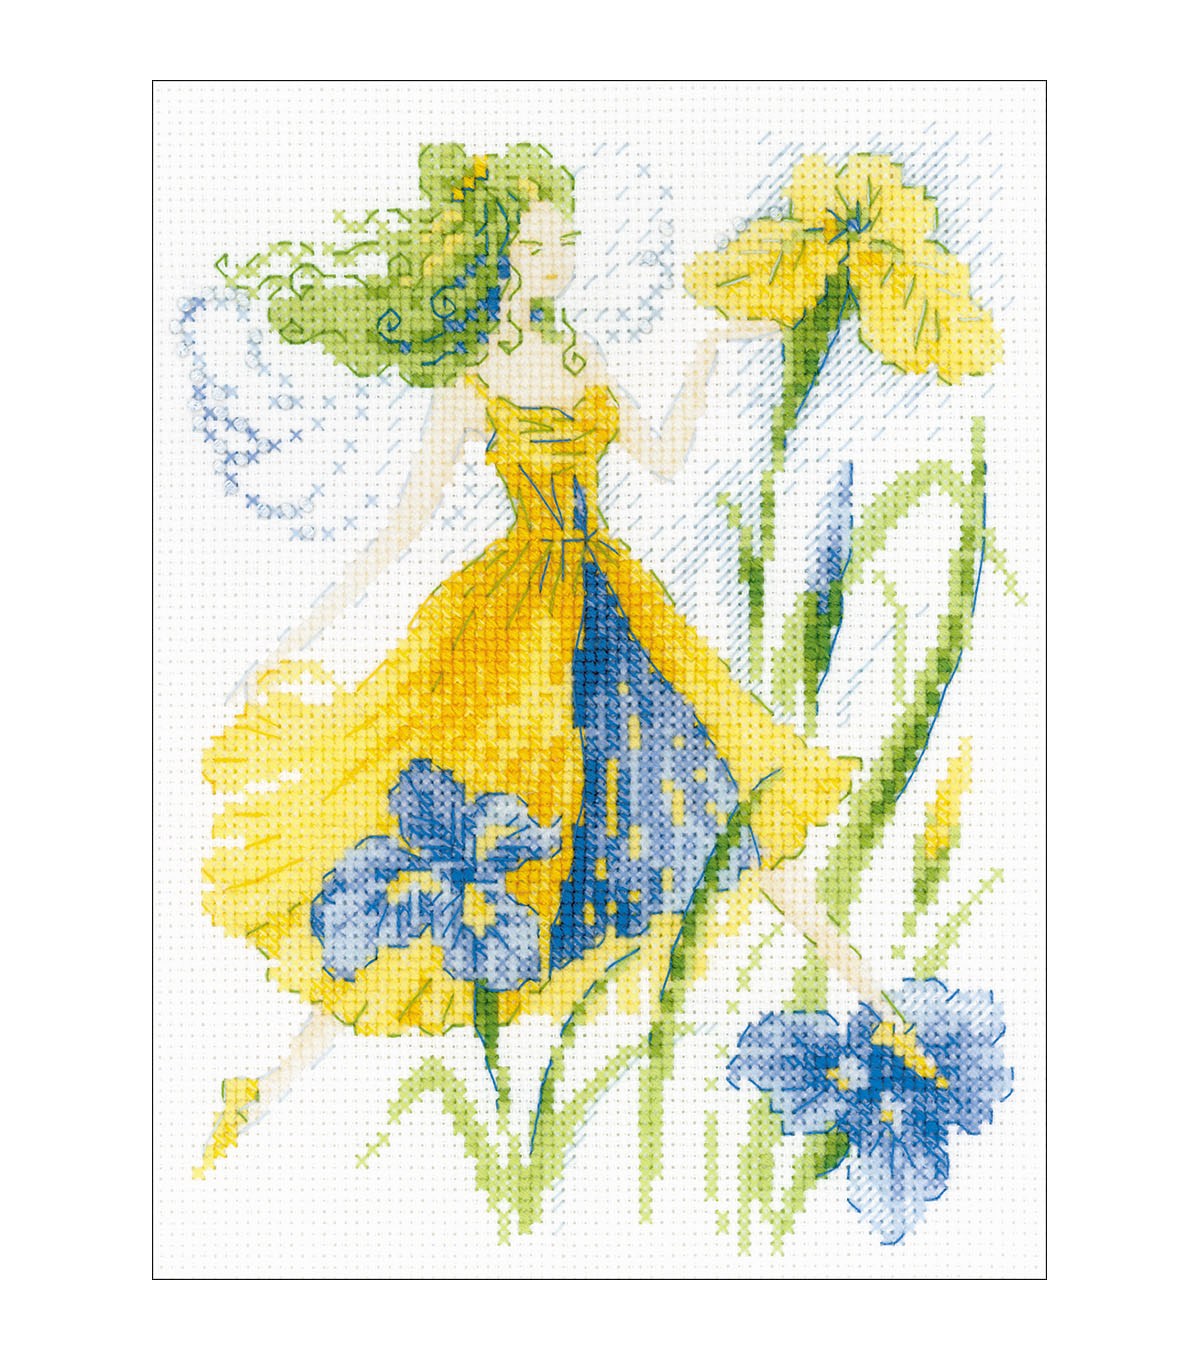 RIOLIS 6\u0027\u0027x7.75\u0027\u0027 Counted Cross Stitch Kit-Sunny Day Fairy